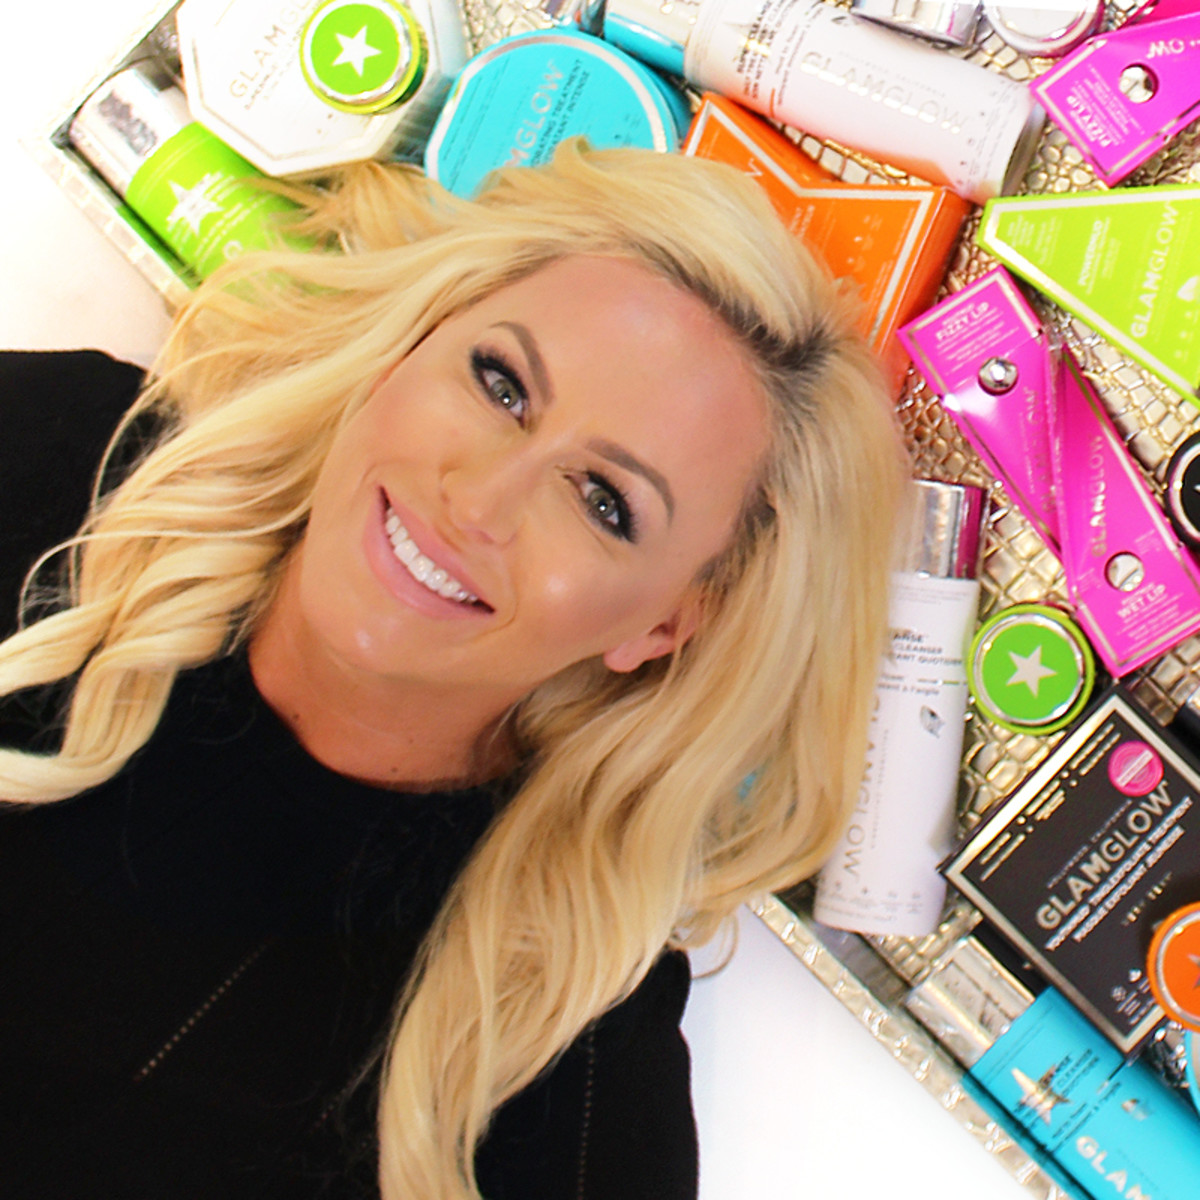 Shannon Dellimore. Photo: Courtesy of Glamglow